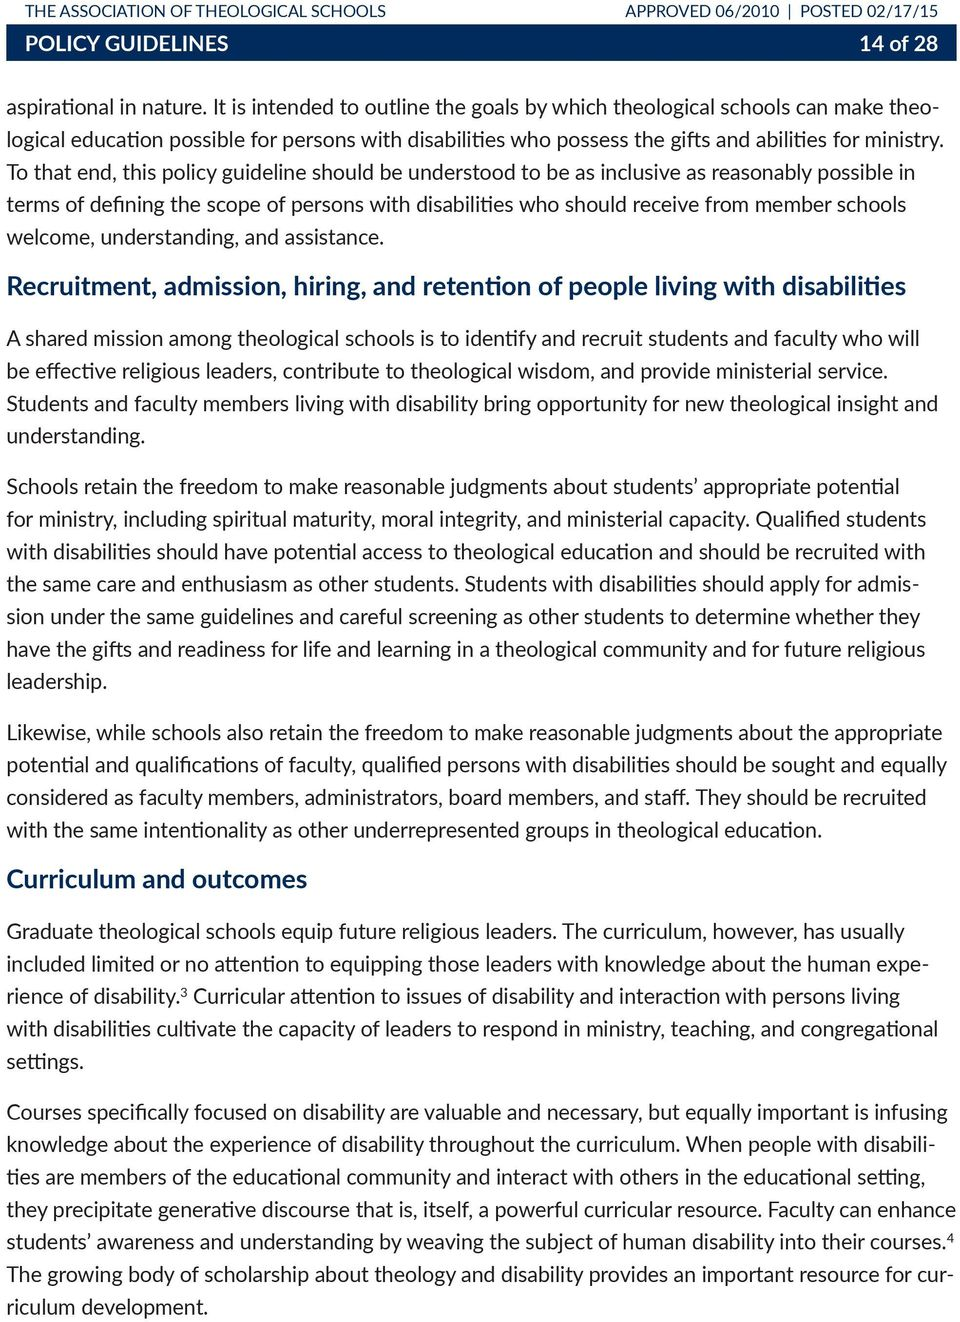 To that end, this policy guideline should be understood to be as inclusive as reasonably possible in terms of defining the scope of persons with disabilities who should receive from member schools